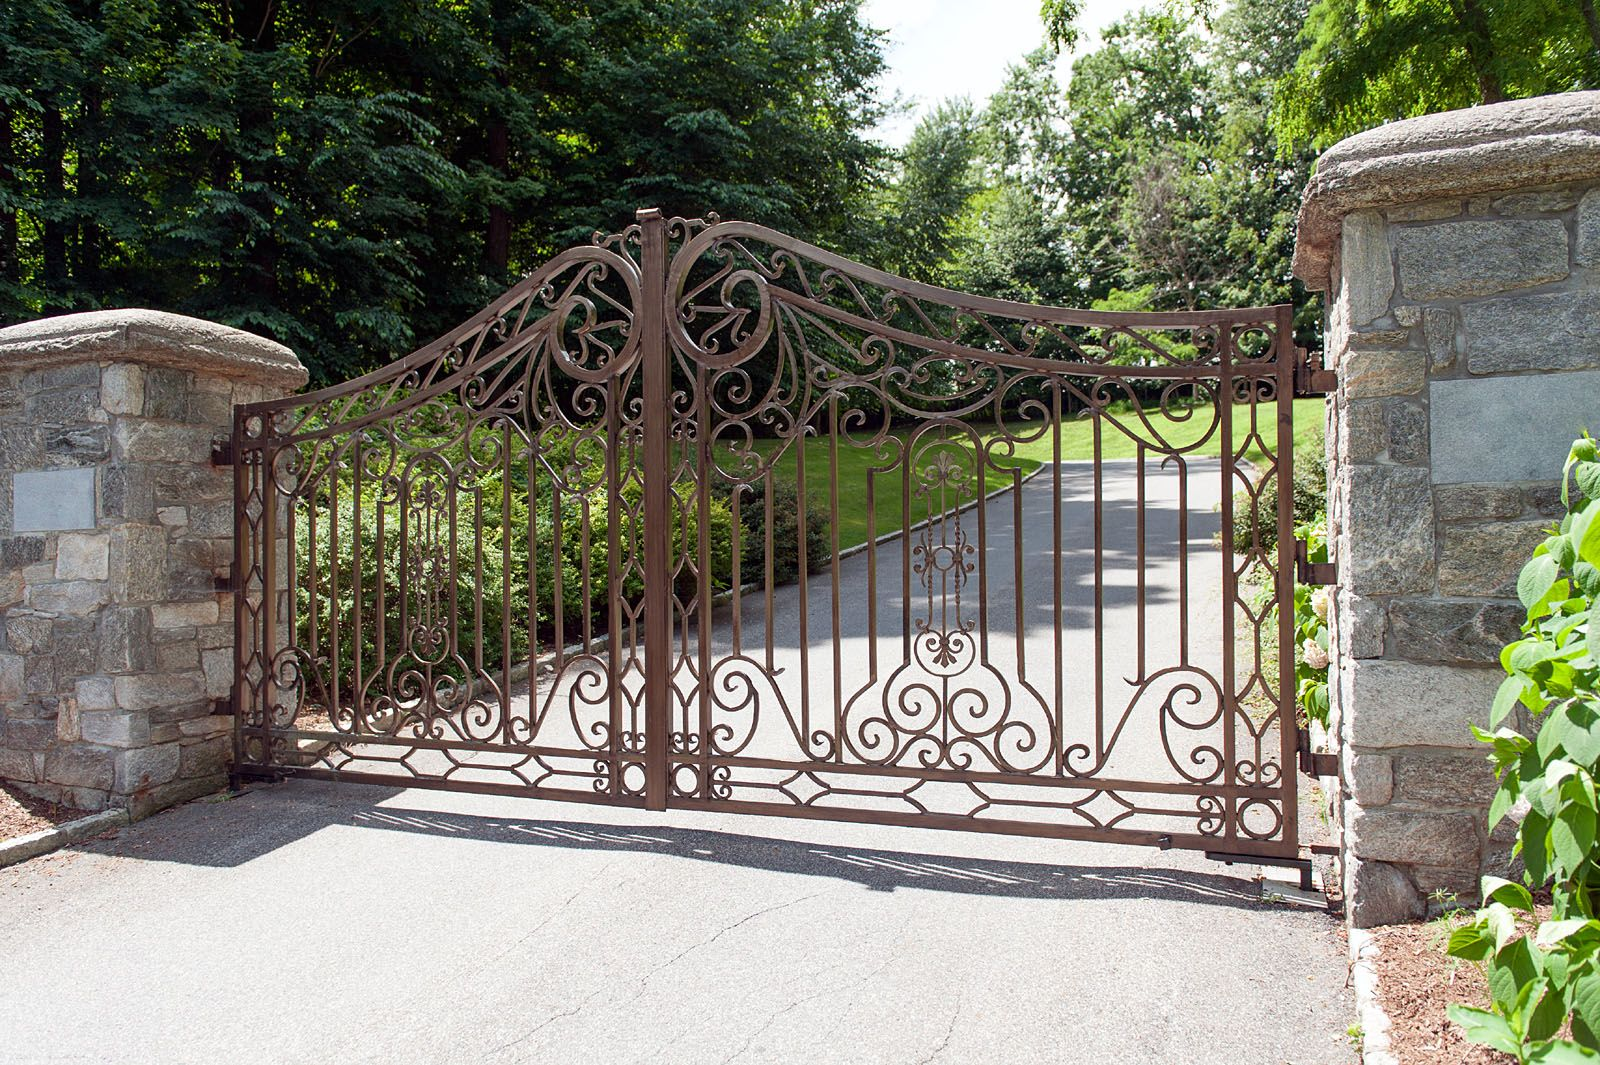 This Elegant Wrought Iron Design Gets A Really Unique Touch With Bronzed Powder Coating Instead Of The Tr Wrought Iron Driveway Gates Driveway Gate Gate Design